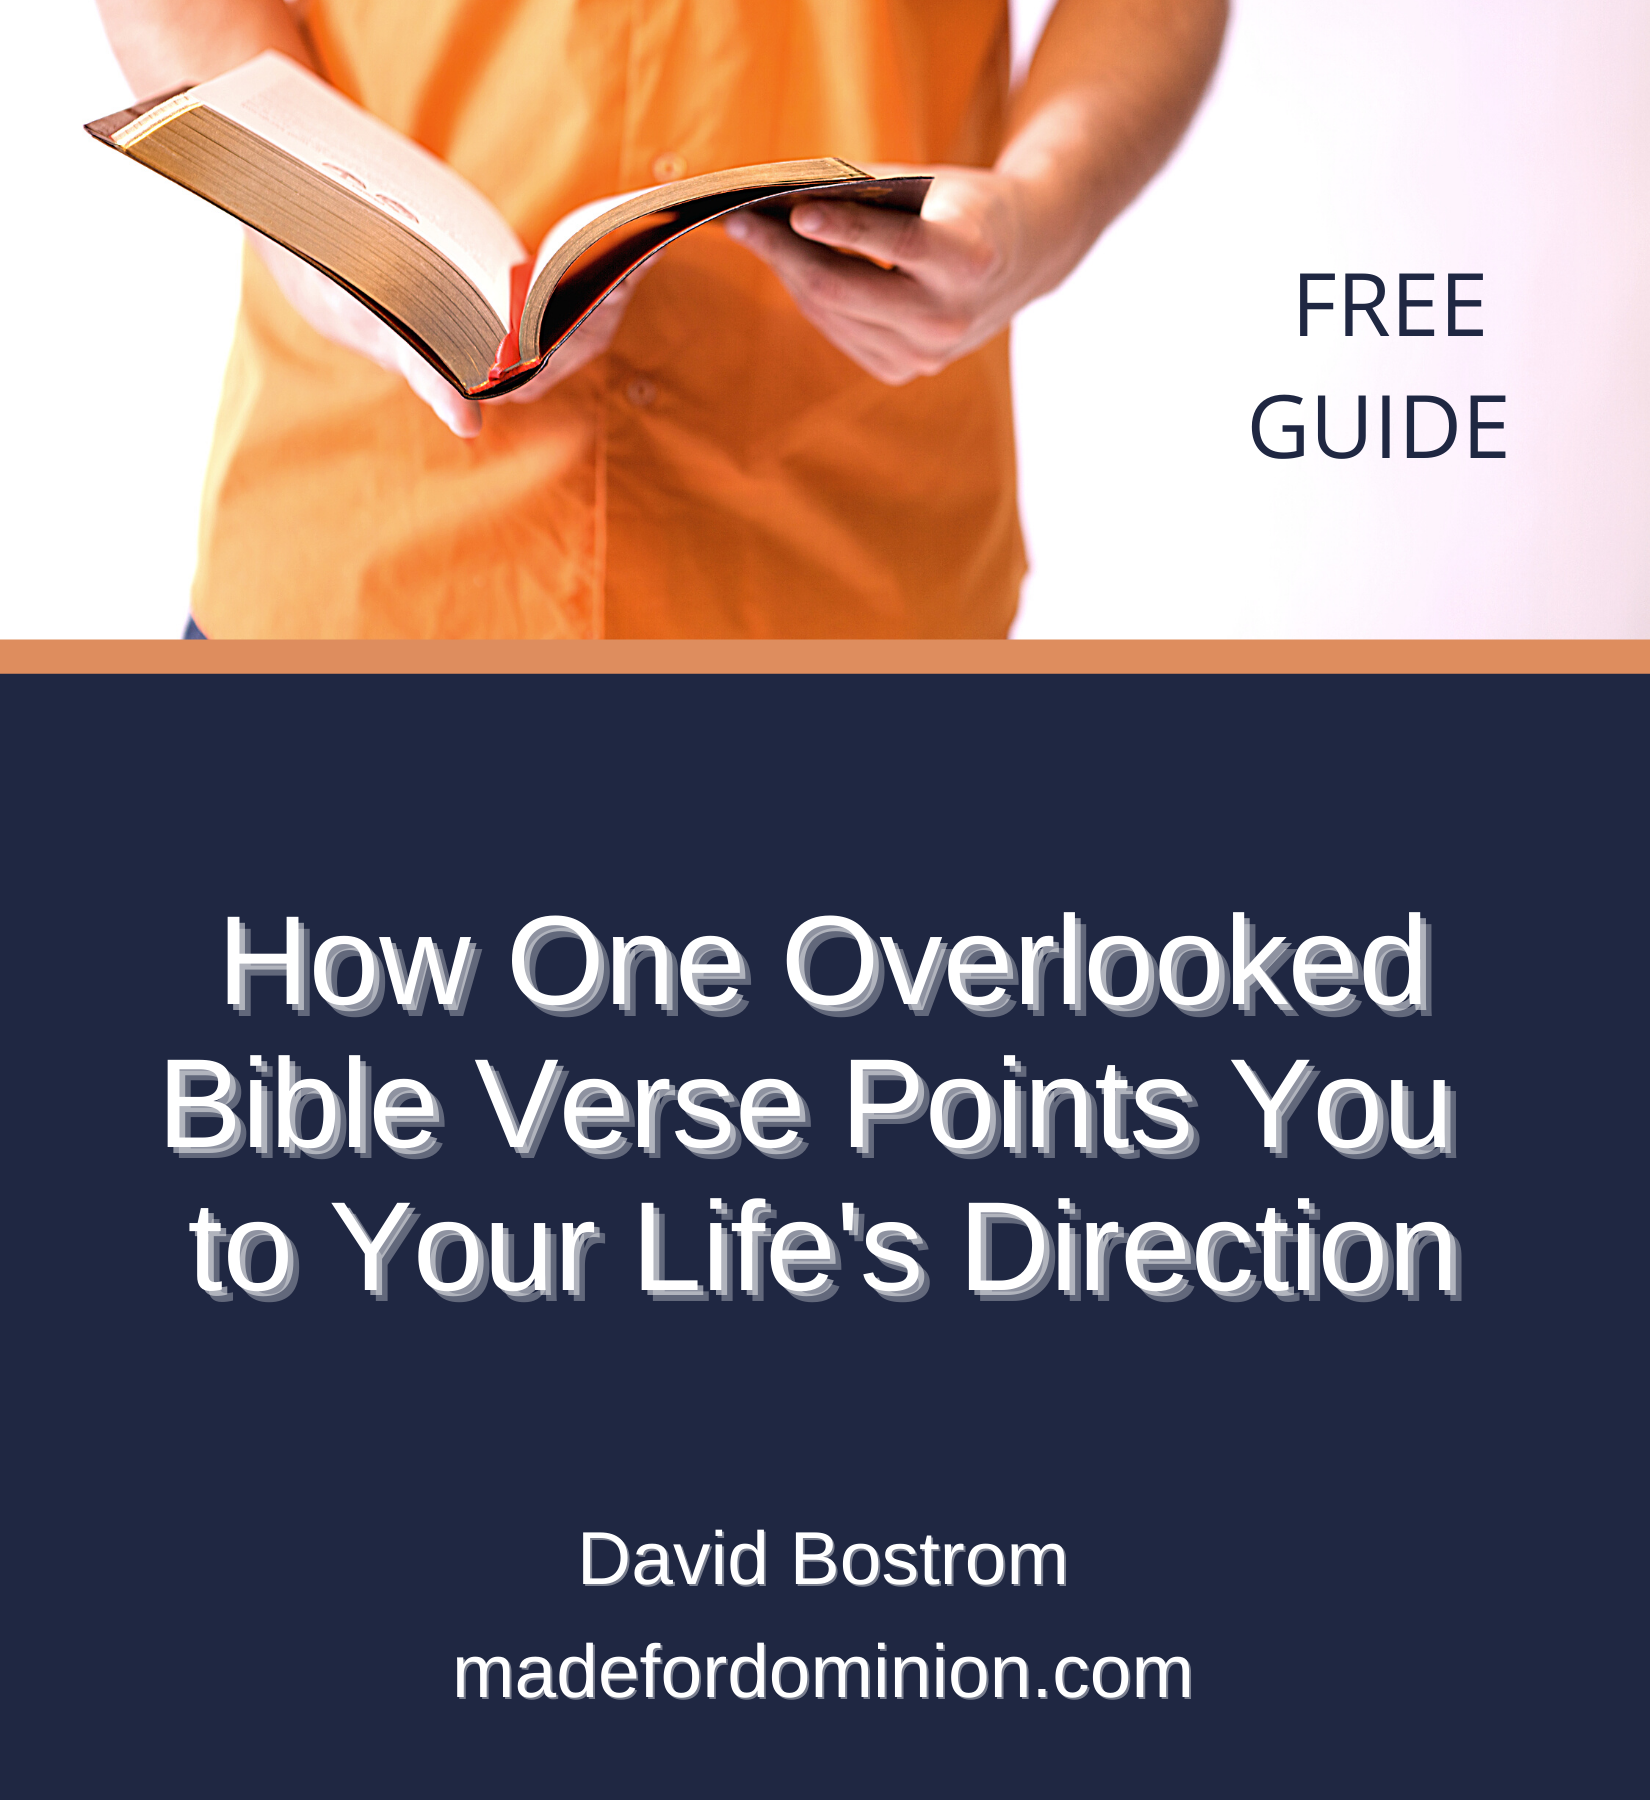 How one overlooked Bible verse points you to your life's direction | Download the guide | David Bostrom | Made for Dominion Ministries | Lakeland, FL